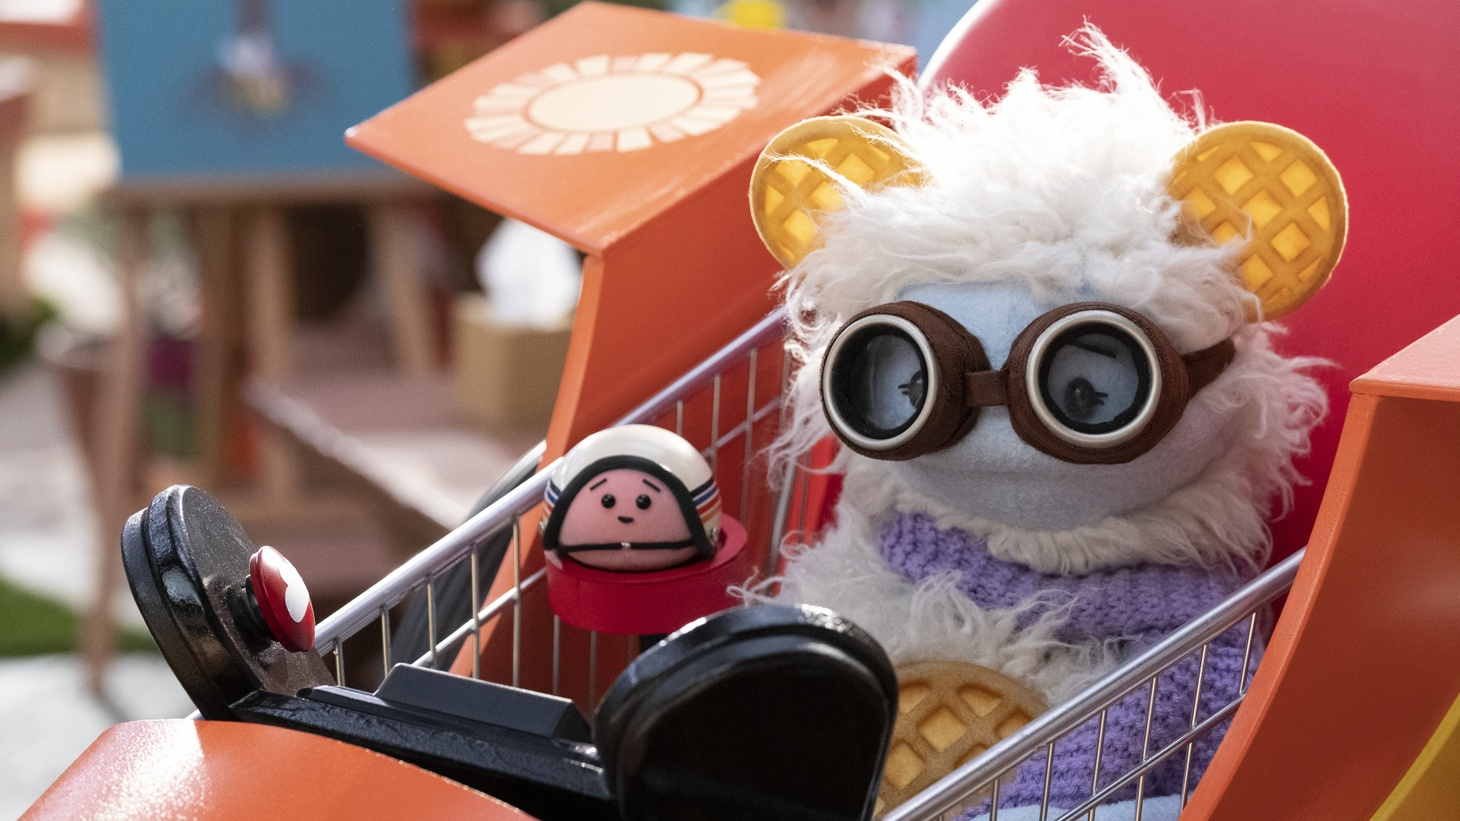 """Intrepid puppets """"Waffles & Mochi"""" embark on culinary adventures around the world to learn about ingredients and meet famous chefs in a 10-episode series for Netflix."""